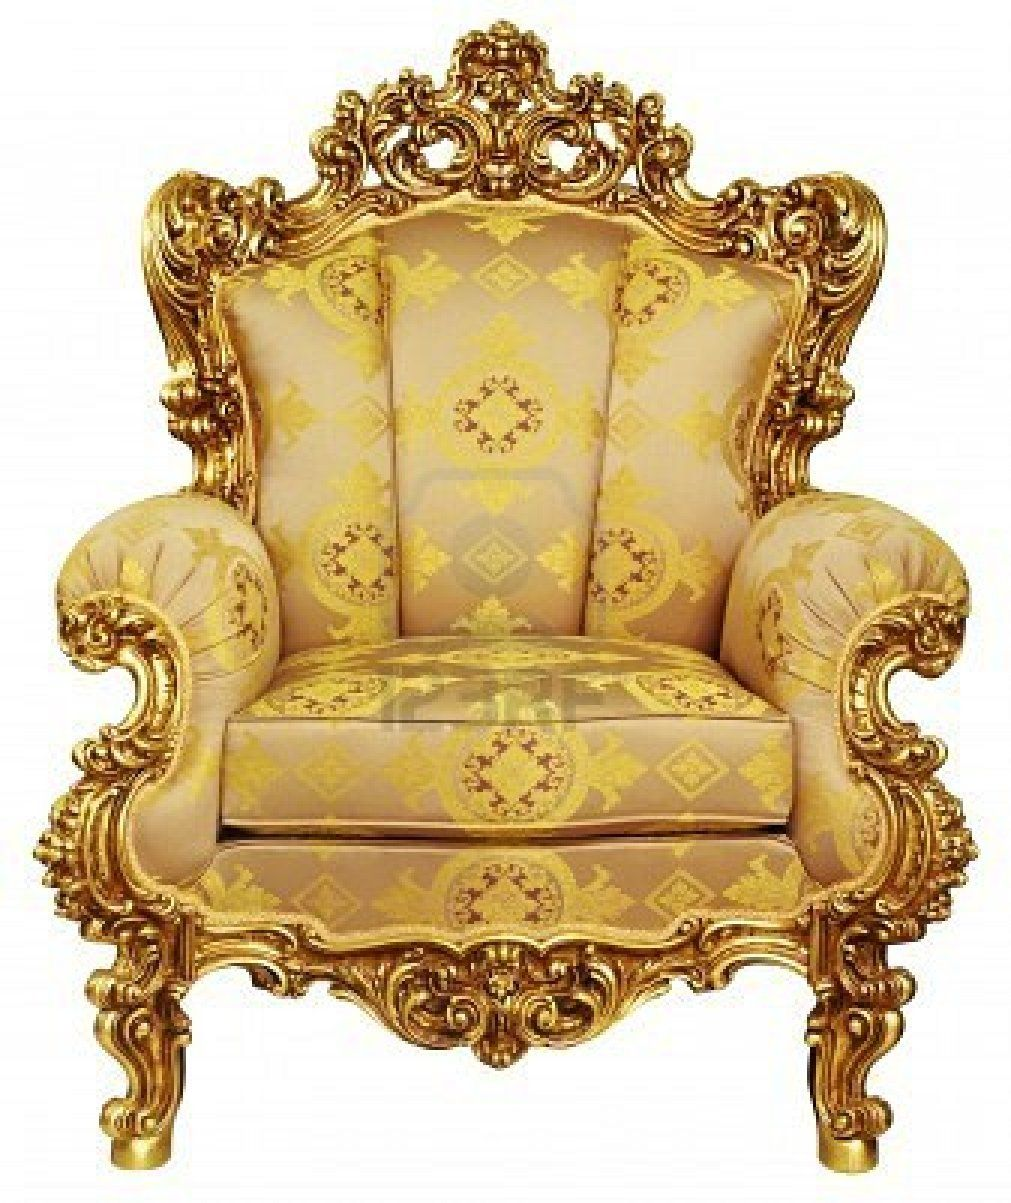 photos king chair png for iphone hd pics image detail high resolution  isolated gold elbowchair - King PNG HD